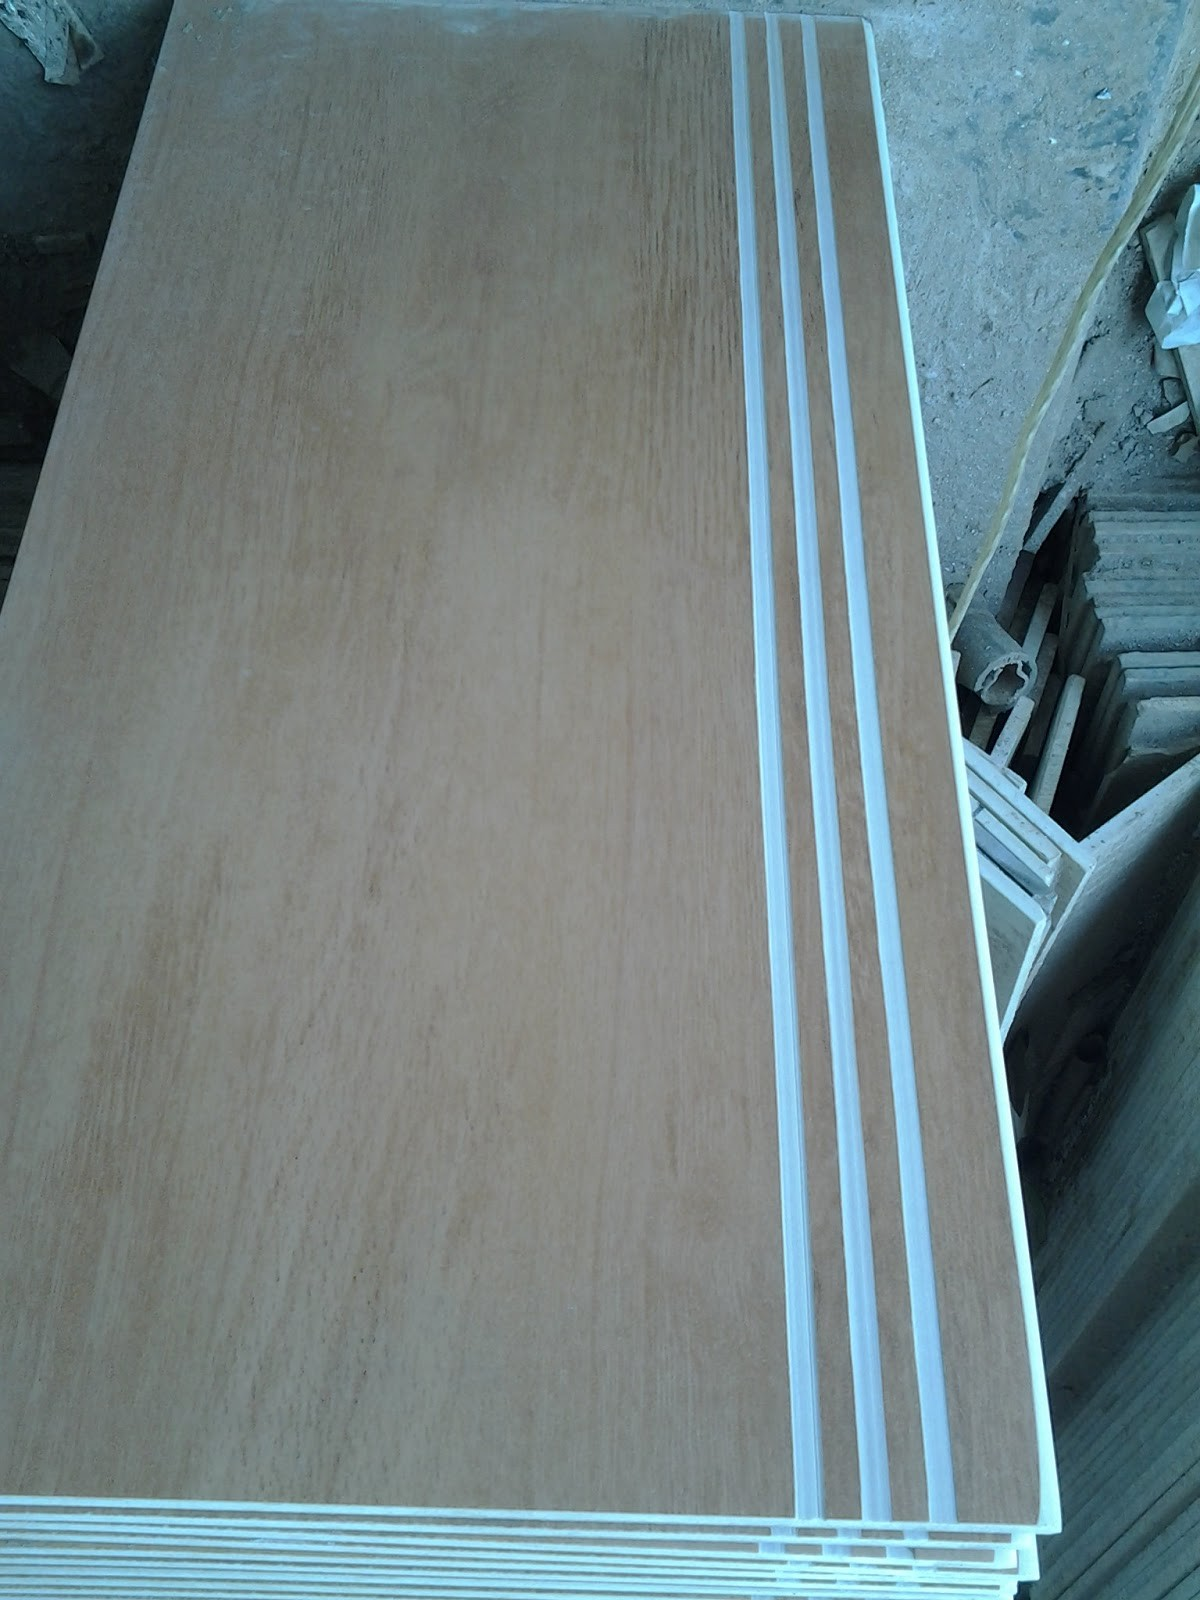 Size 30x60 step Nosing